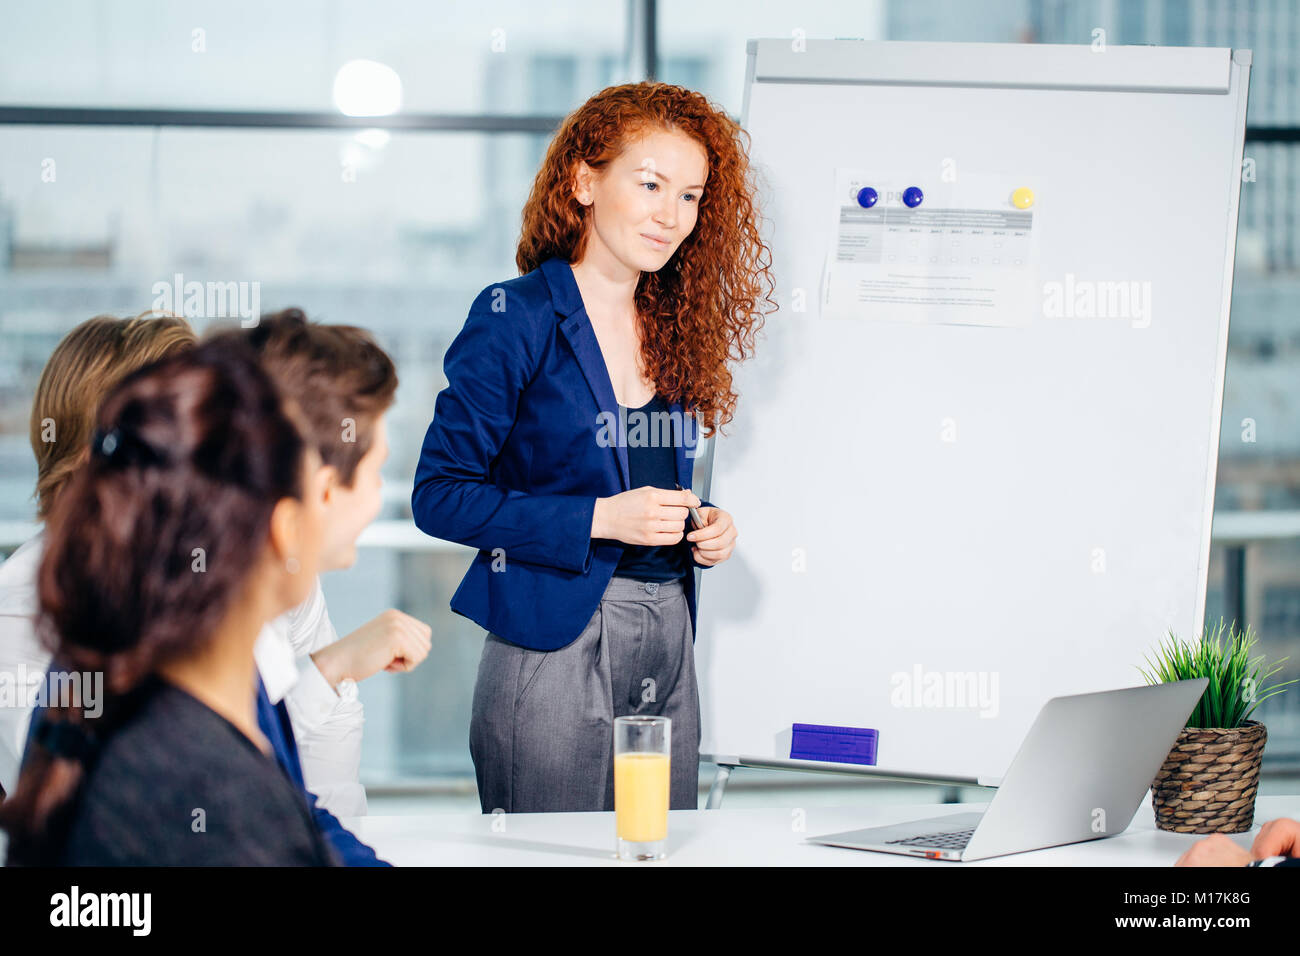 Business woman giving presentation to colleagues in office - Stock Image